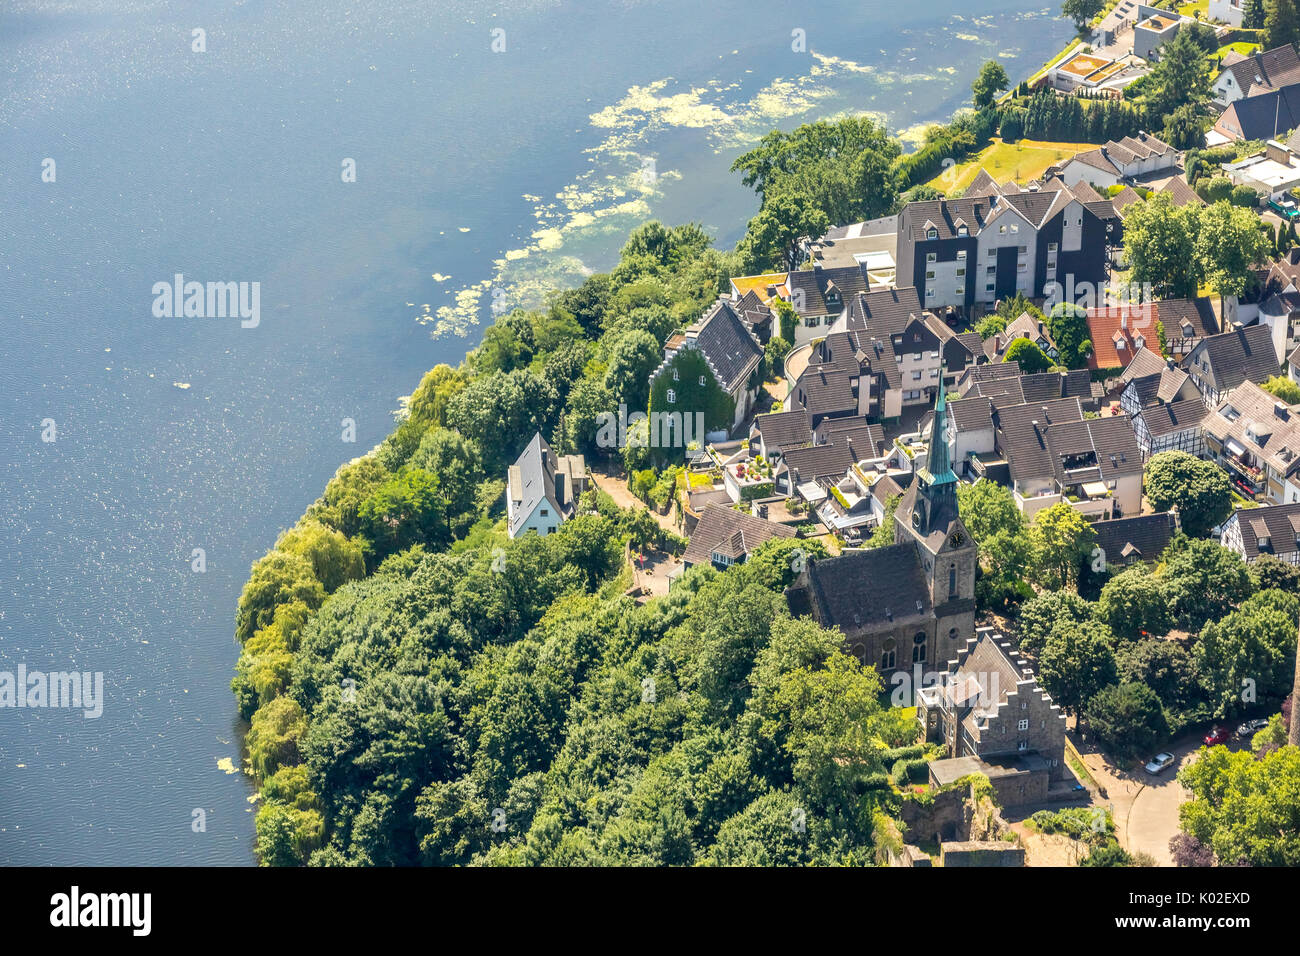 Freedom weather, keep of the castle weather with the neighboring timbered area of freedom, waterweed species Elodea nuttallii in Harkortsee, Wetter (R - Stock Image